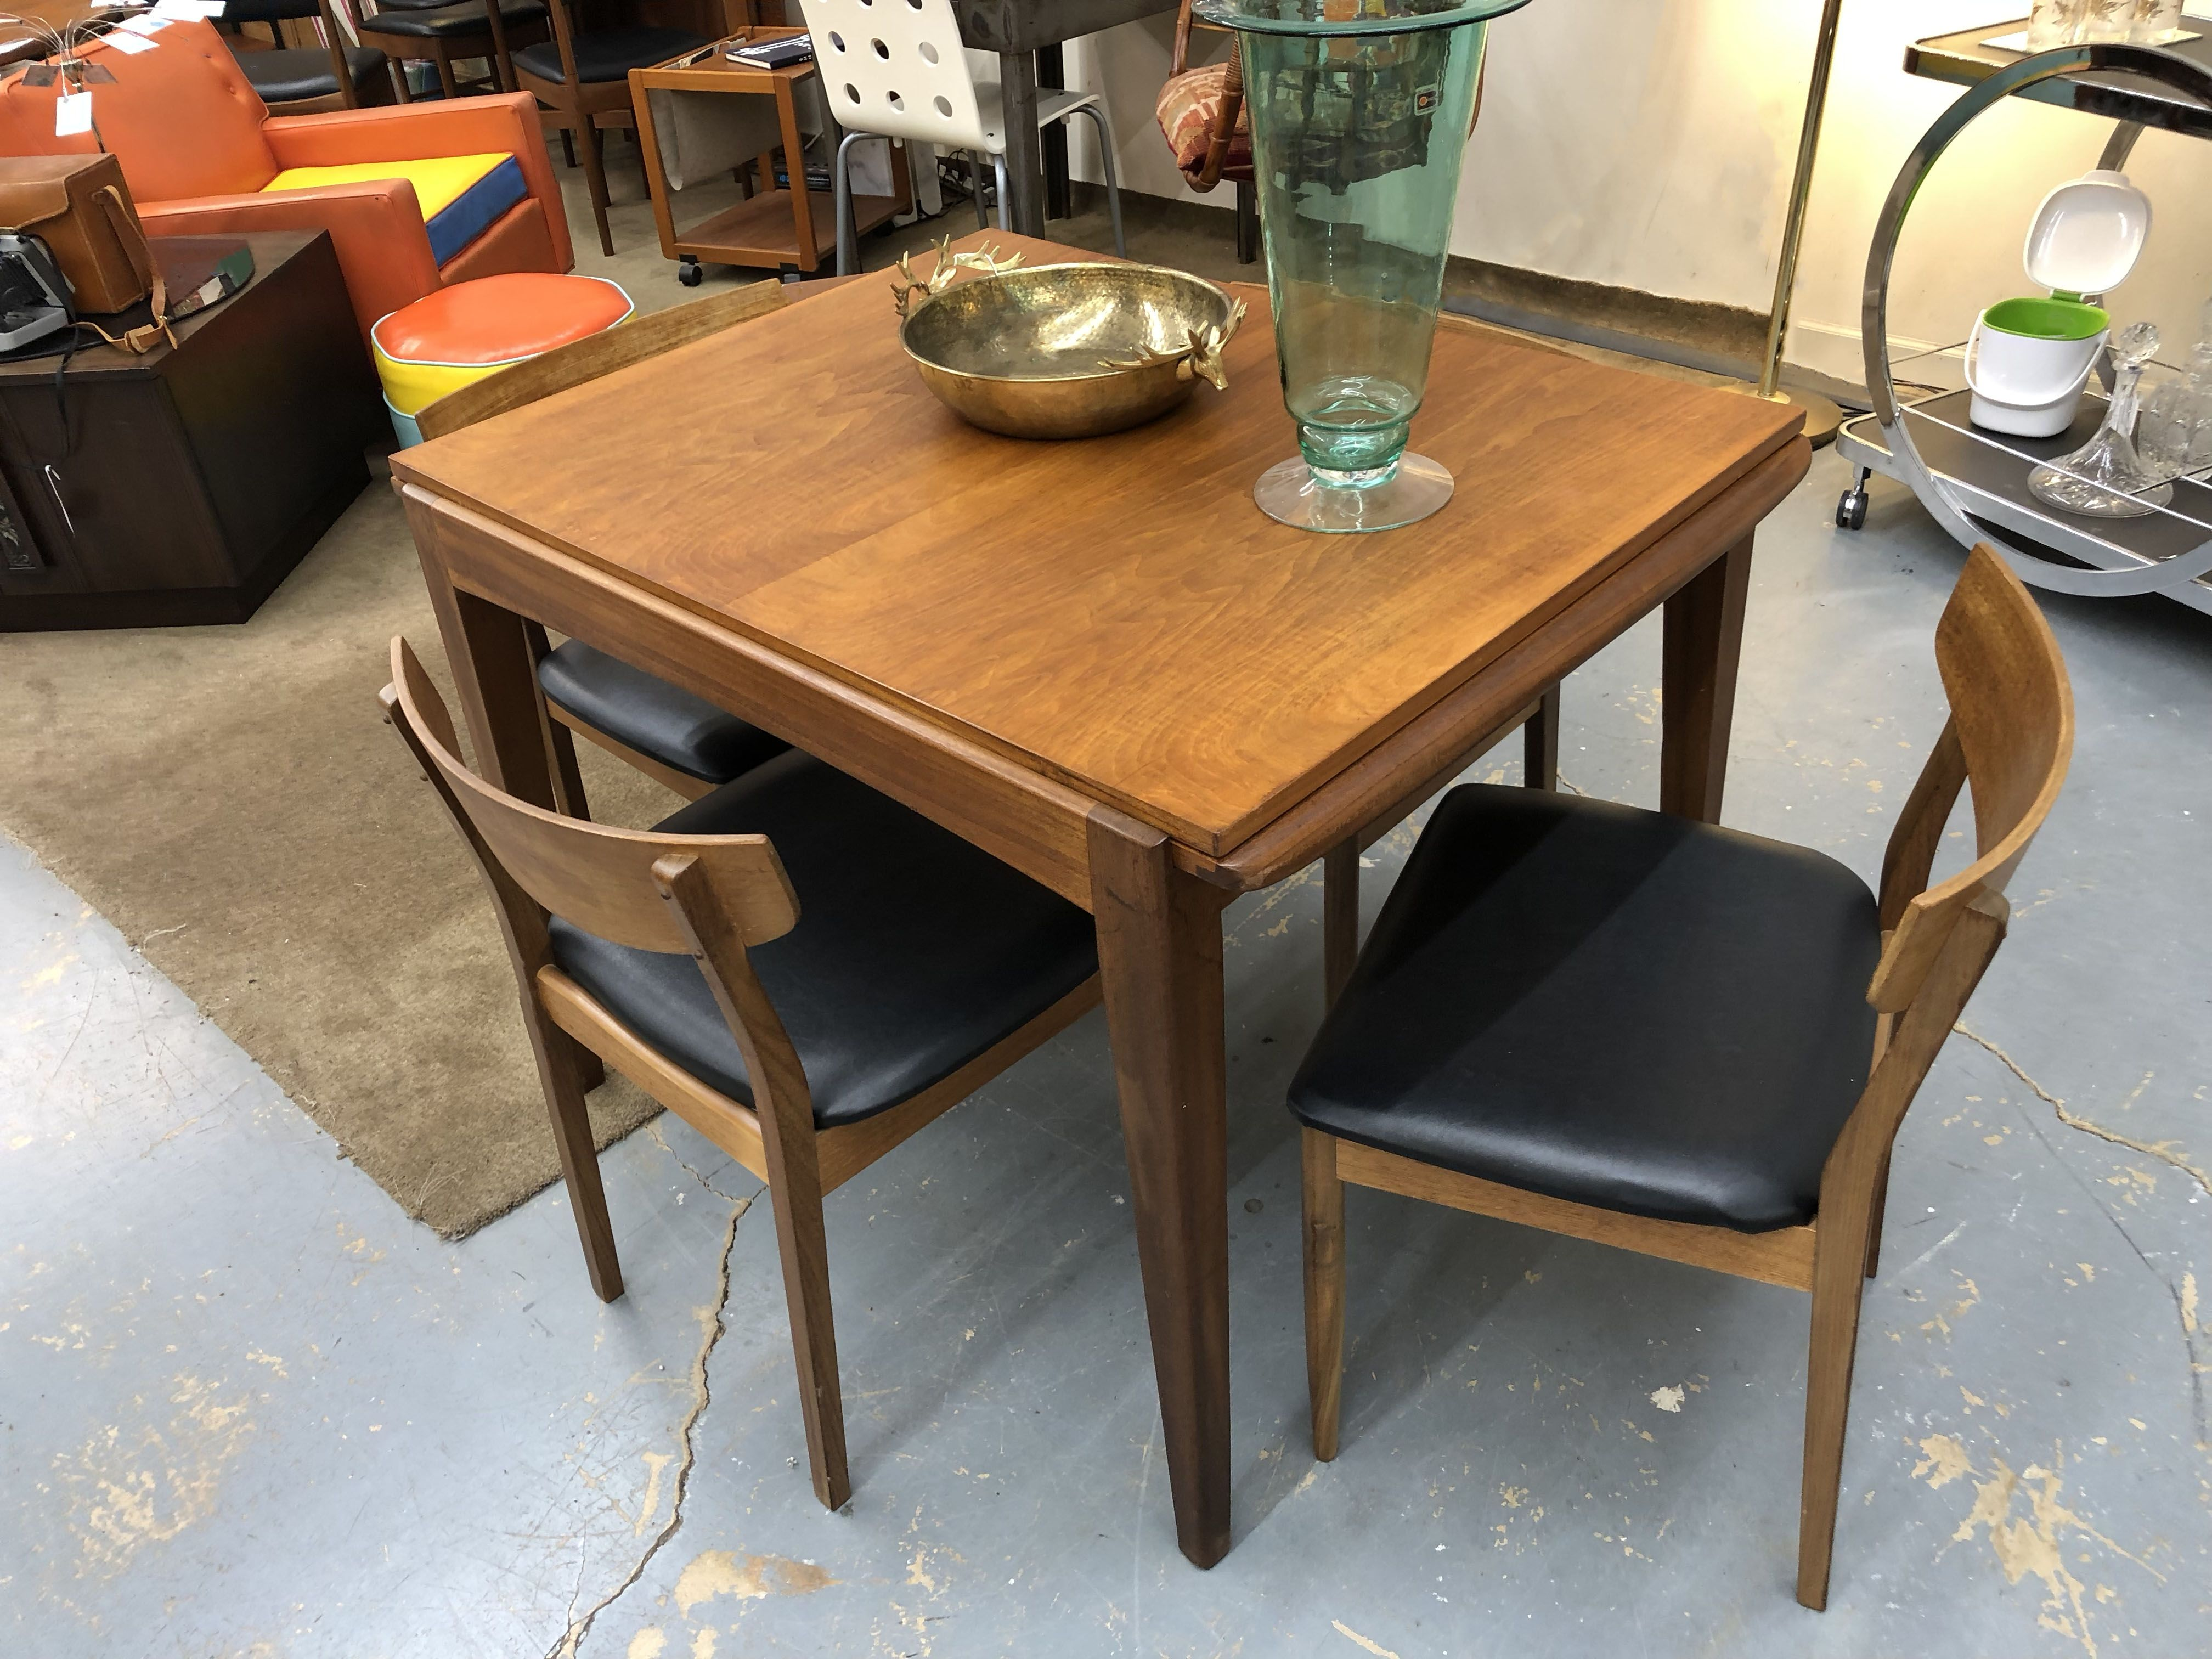 Mid Century Teak Draw Leaf Table 40 68 Length 490 Lula B S 1010 N Riverfront Blvd Dallas Tx With Images Draw Leaf Table Mid Century Table Mid Century Furniture